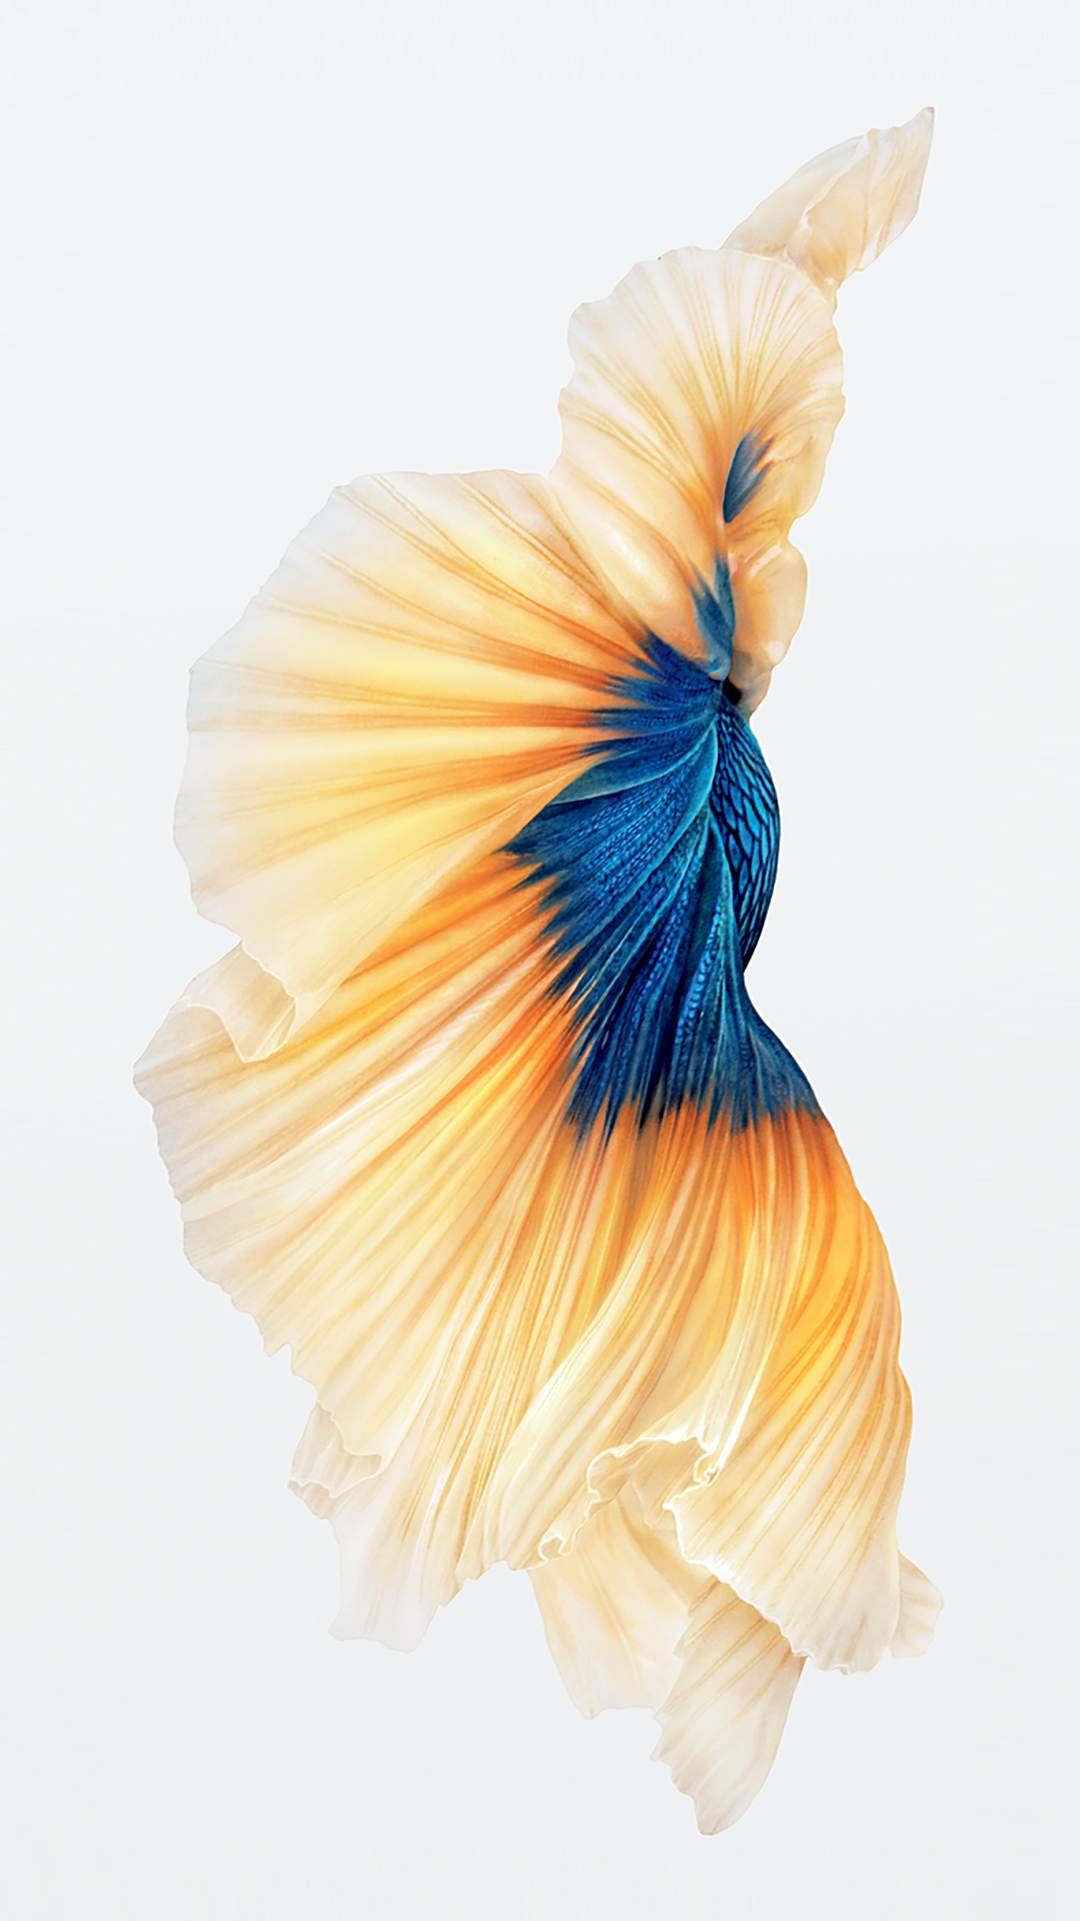 Iphone 6s Still Wallpaper Images